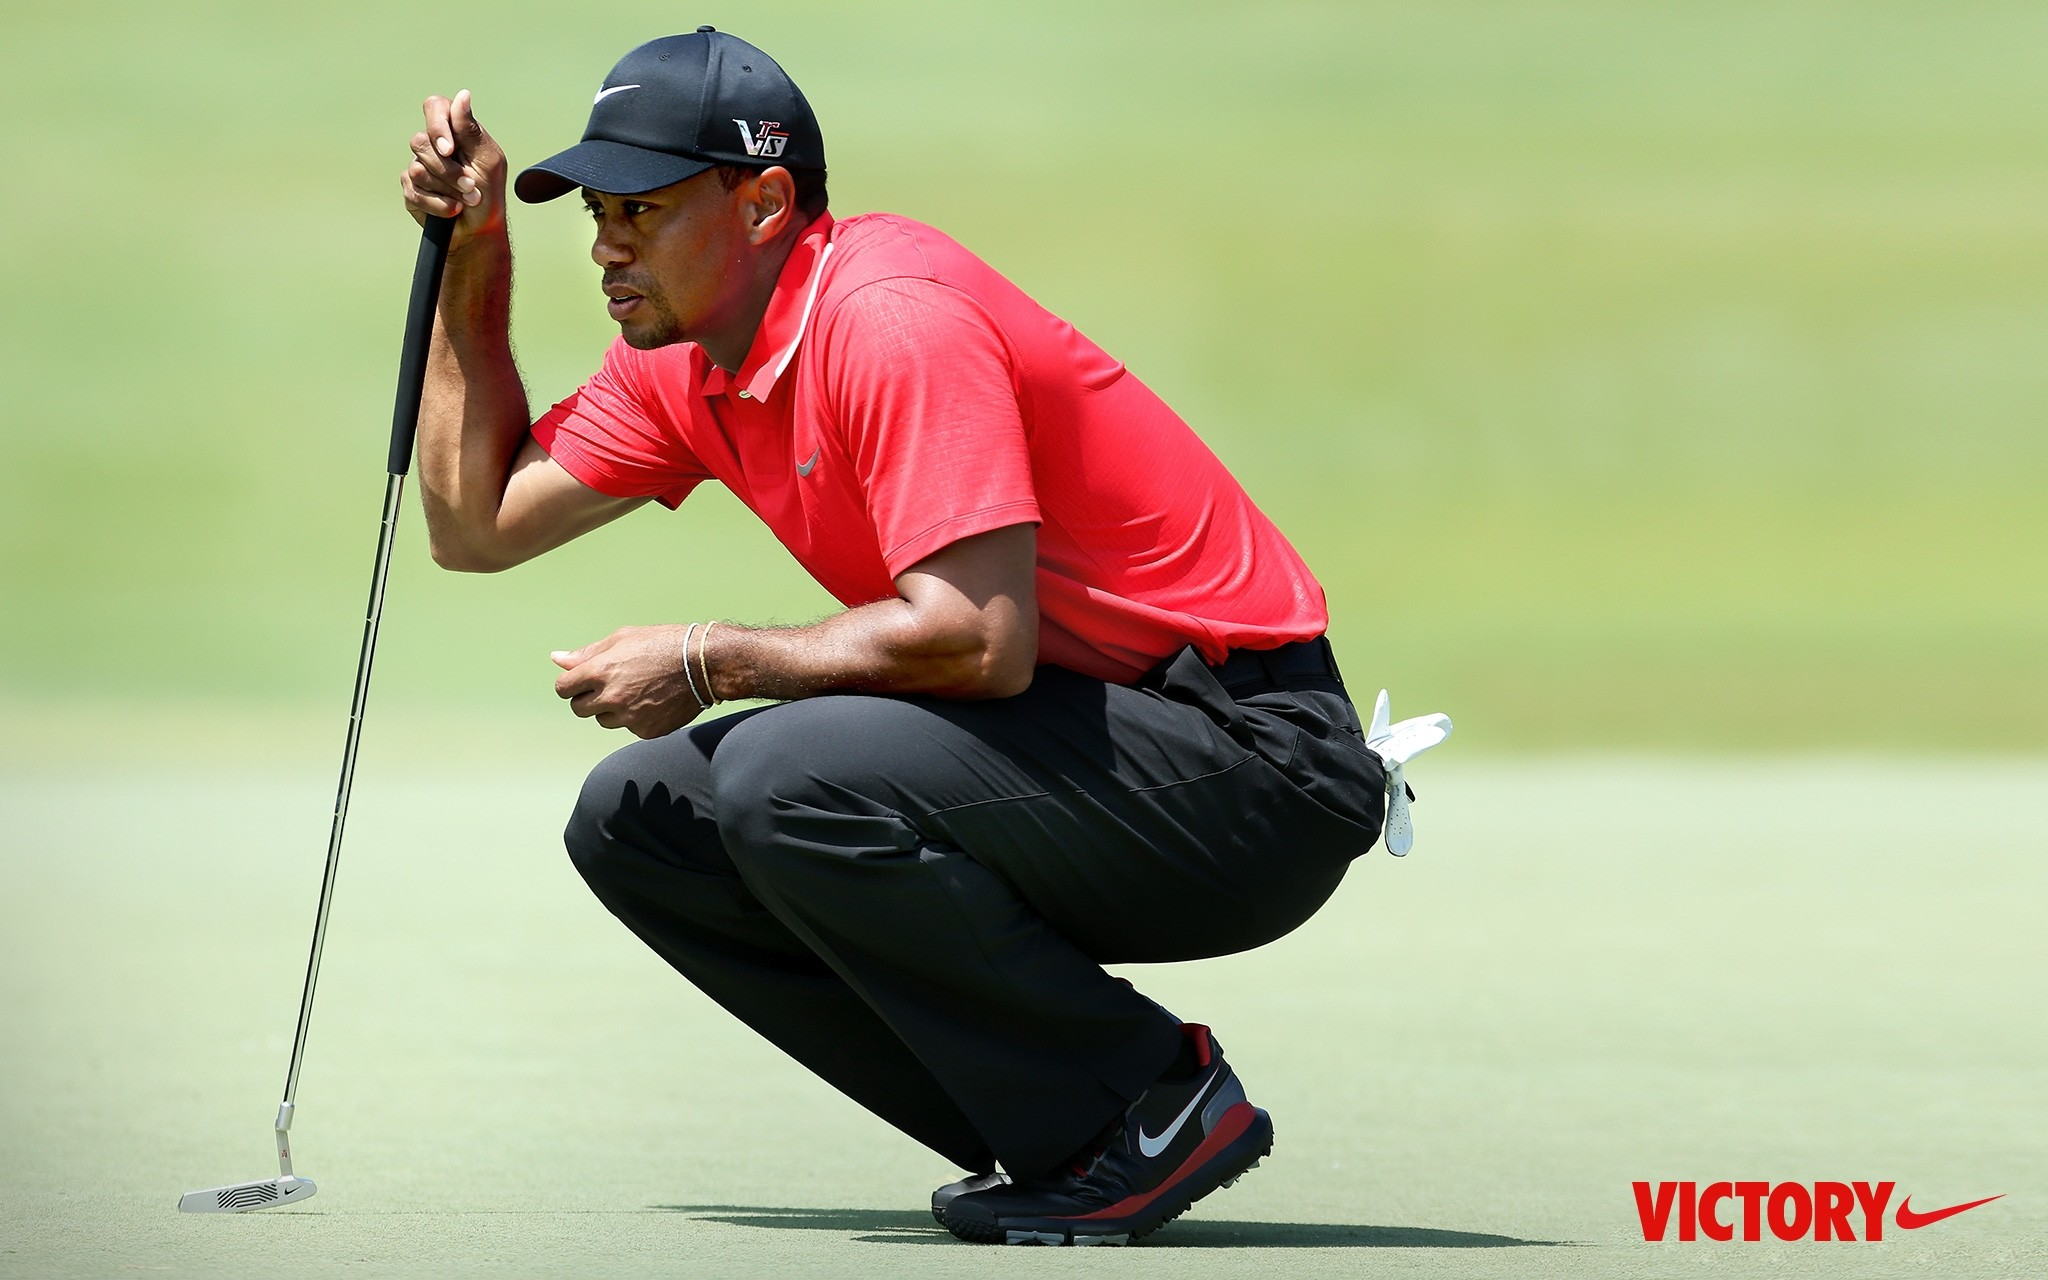 Tiger Woods Wallpapers 68 Images